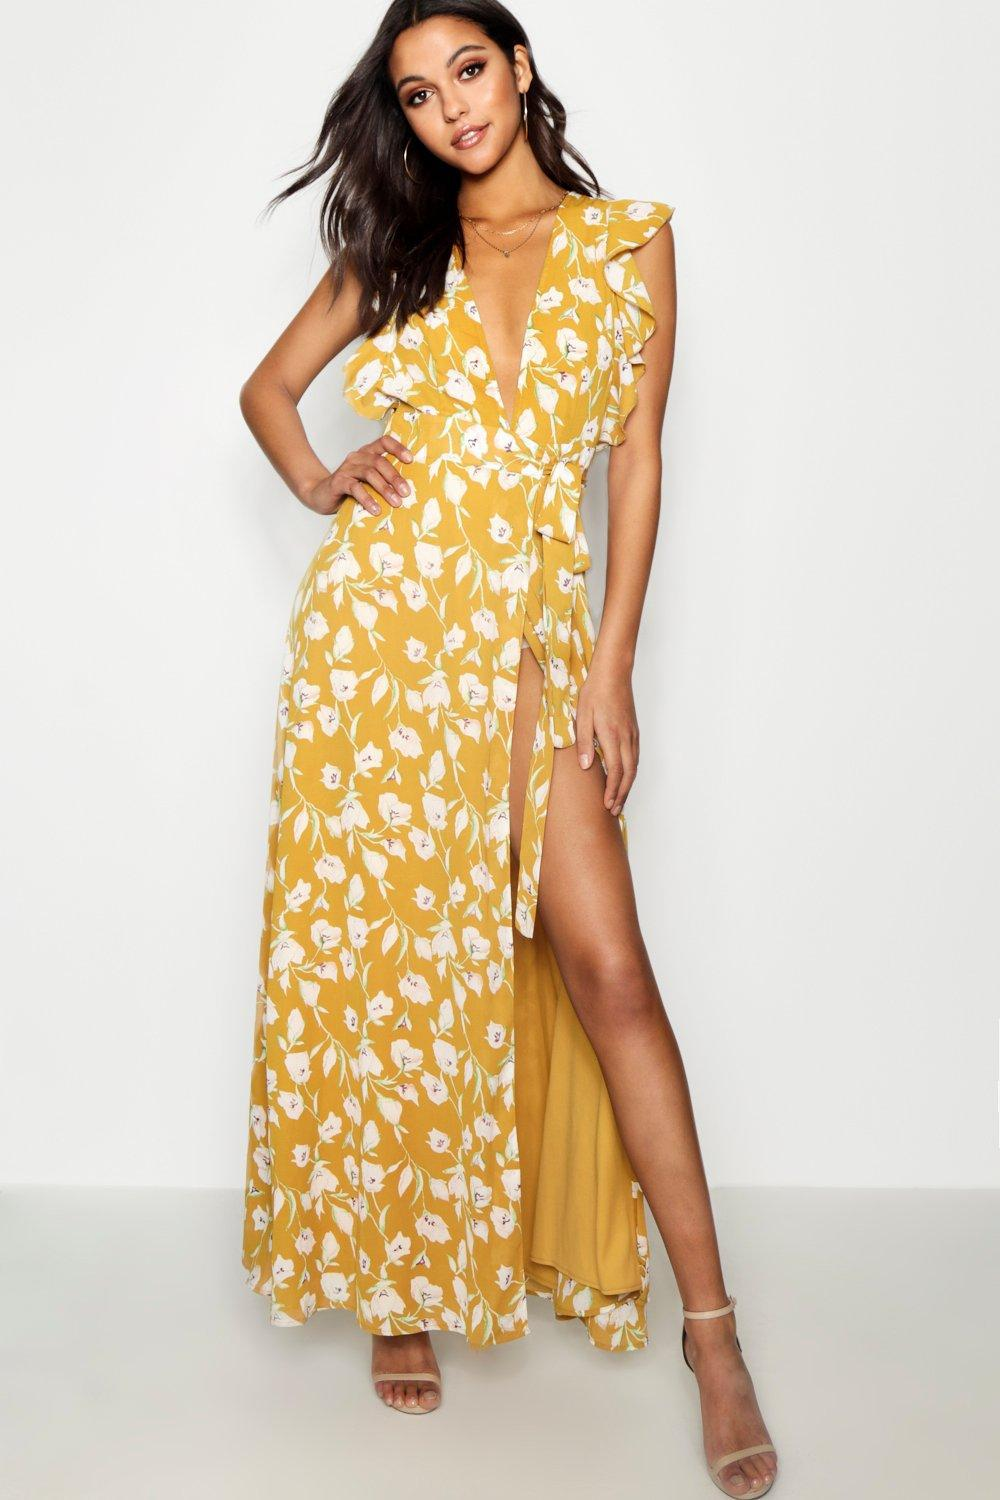 b648cce0cf07 Boohoo Floral Frill Detail Wrap Maxi Dress in Yellow - Save 55% - Lyst